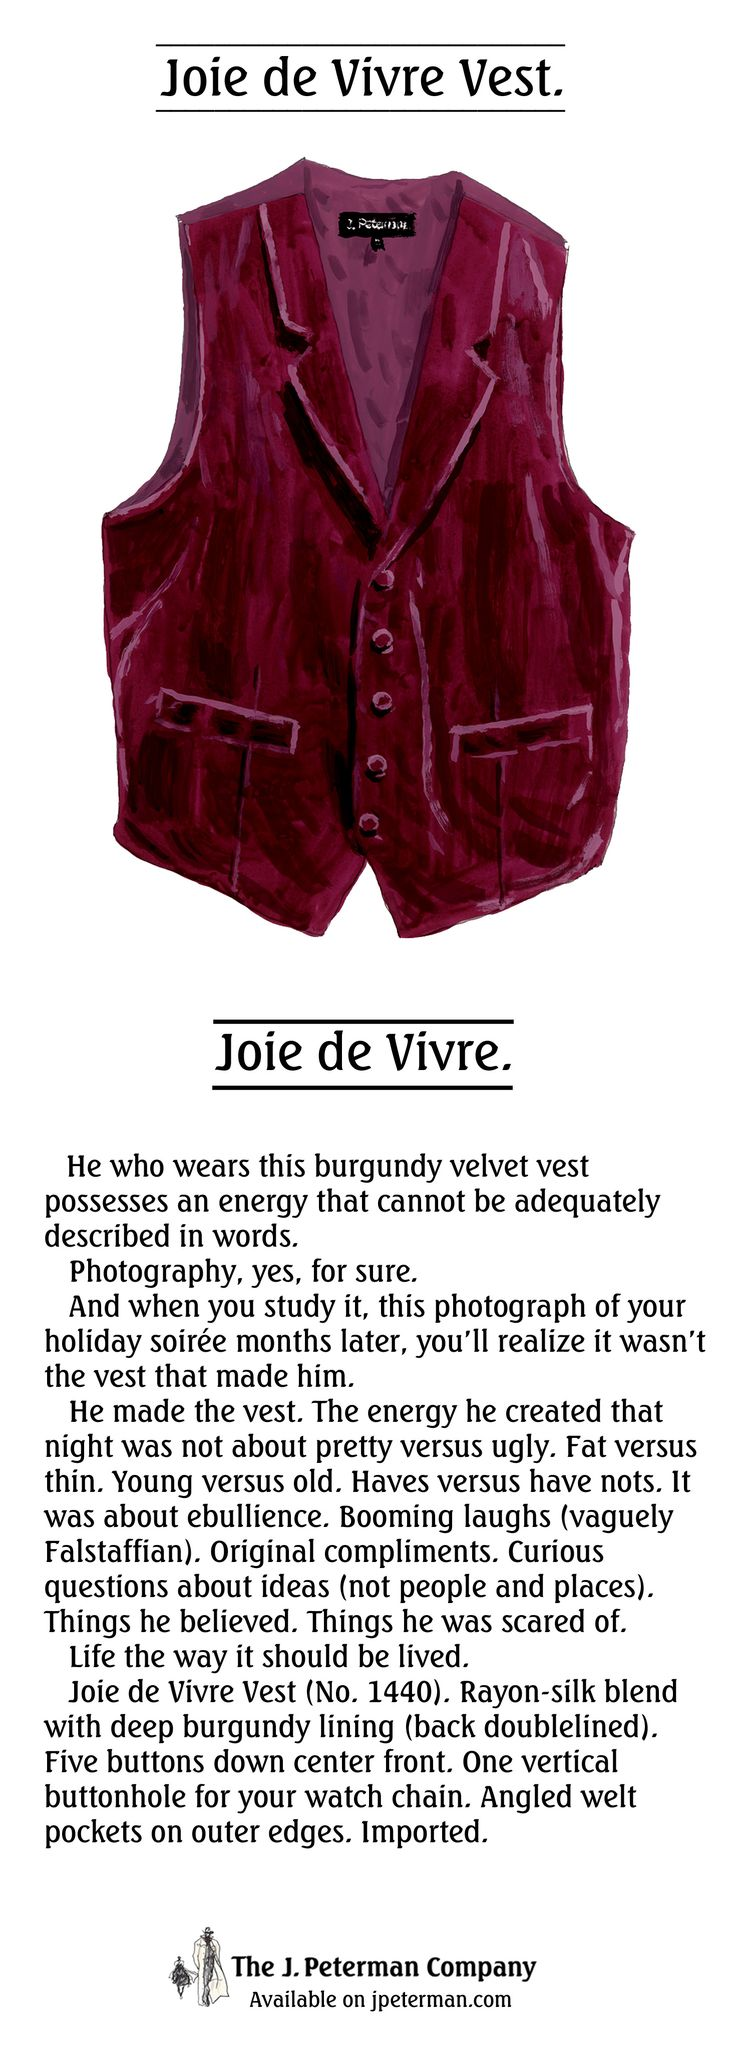 Life the way it should be lived.  Joie de Vivre Vest (No. 1440). Rayon-silk blend with deep burgundy lining (back doublelined). Five buttons down center front. One vertical buttonhole for your watch chain. Angled welt pockets on outer edges.